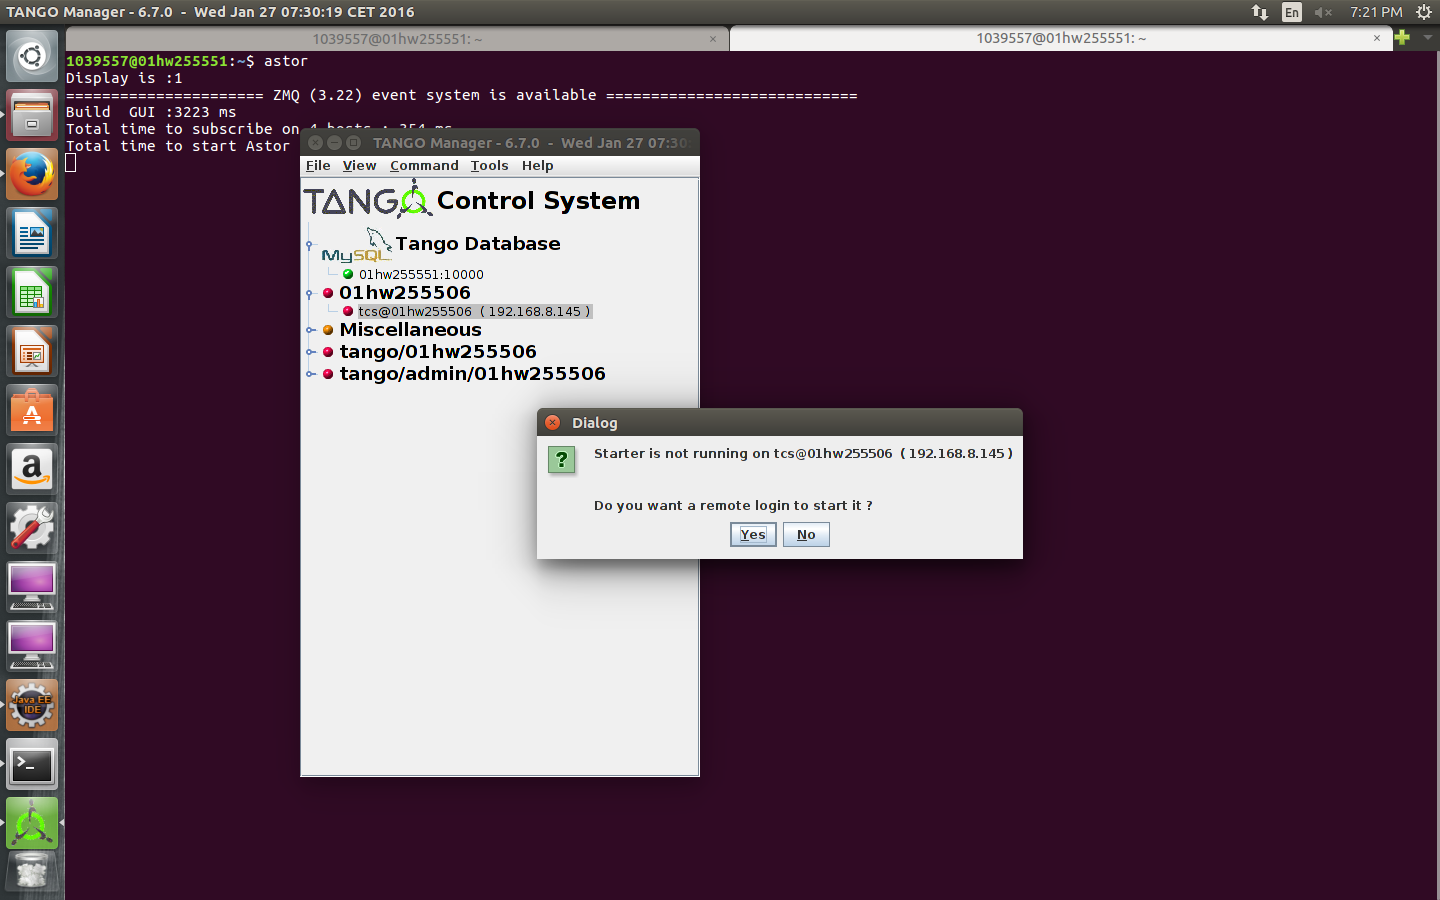 Astor : Remote Host Connection Failed - TANGO Controls